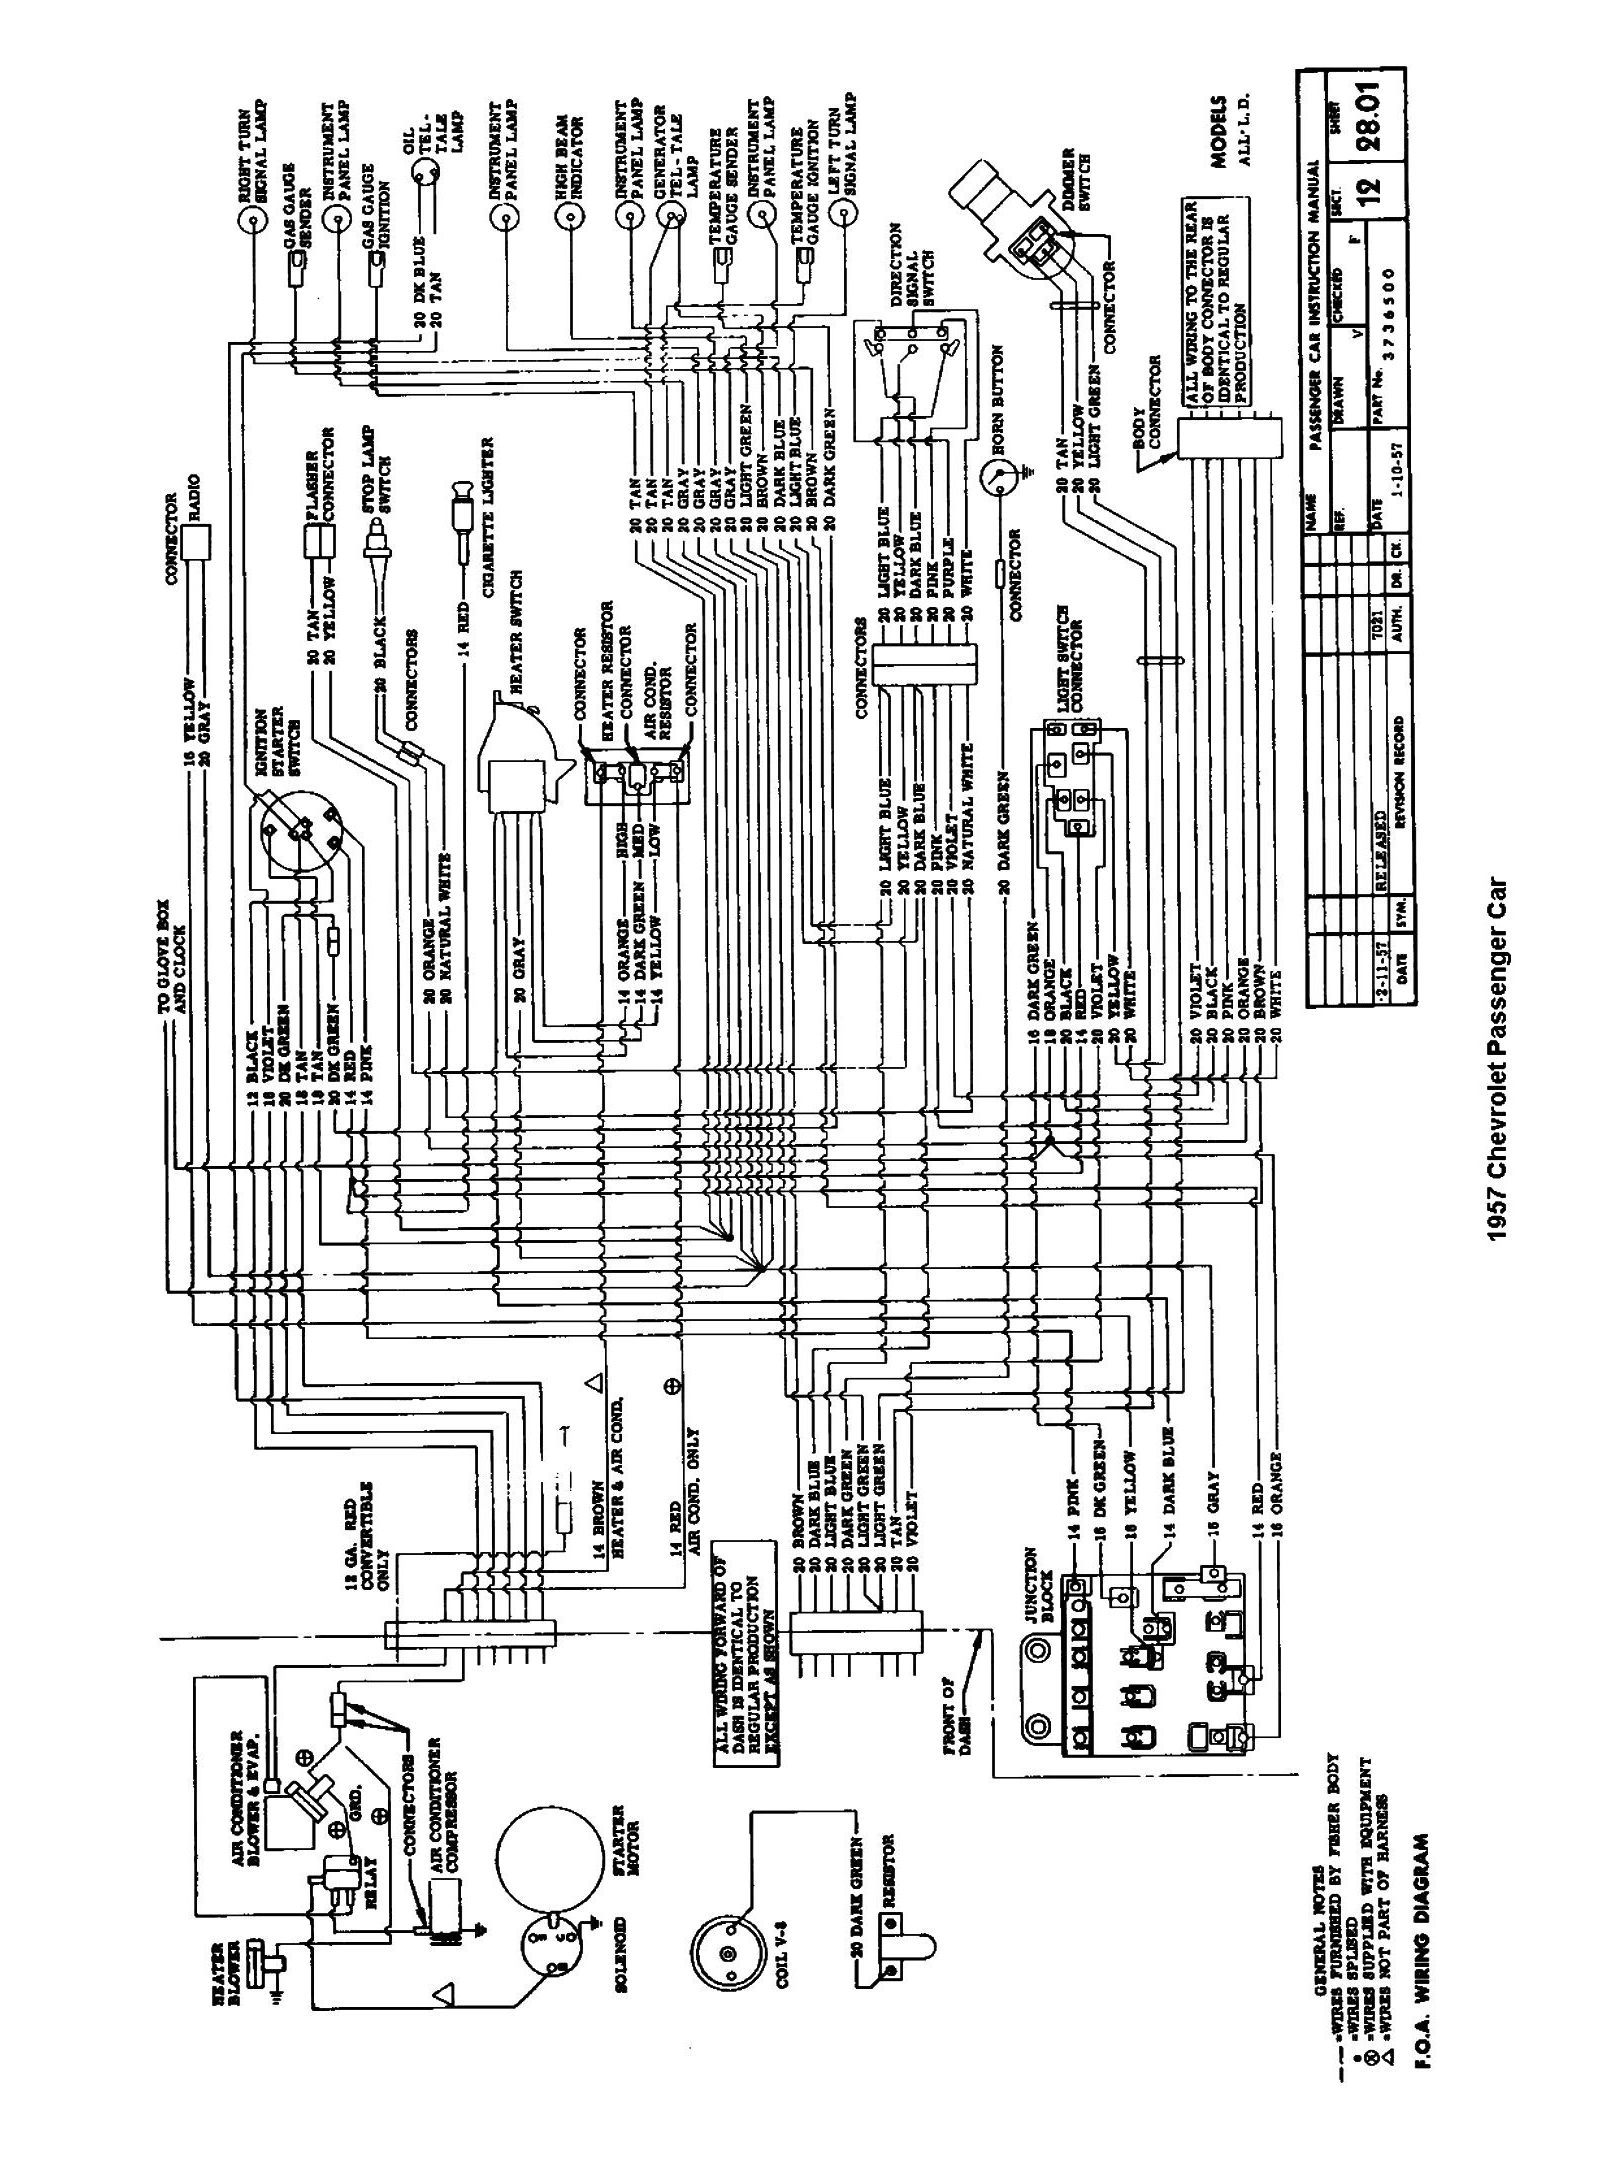 57 Chevy Dash Wiring Diagram Simple 1957 Truck Harness Guide Diagrams Fuse Box